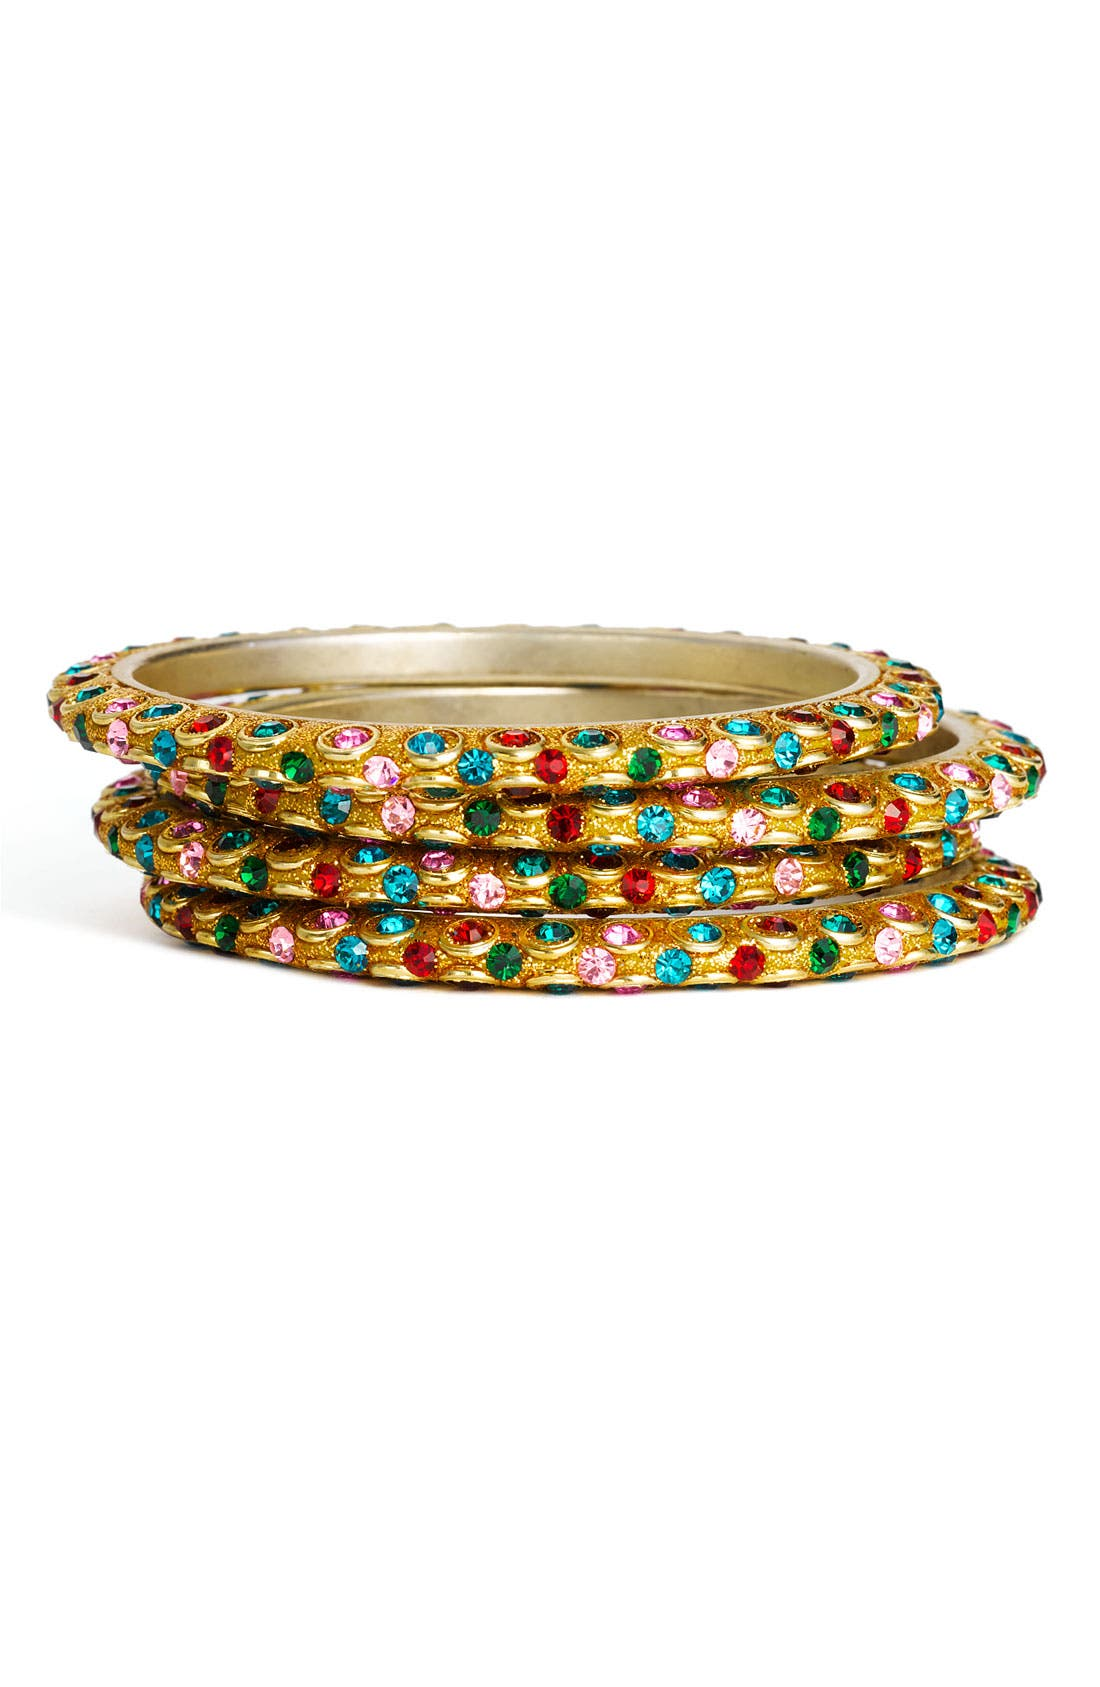 Alternate Image 1 Selected - Chamak by Priya Kakkar Multicolor Bangles (Set of 4)